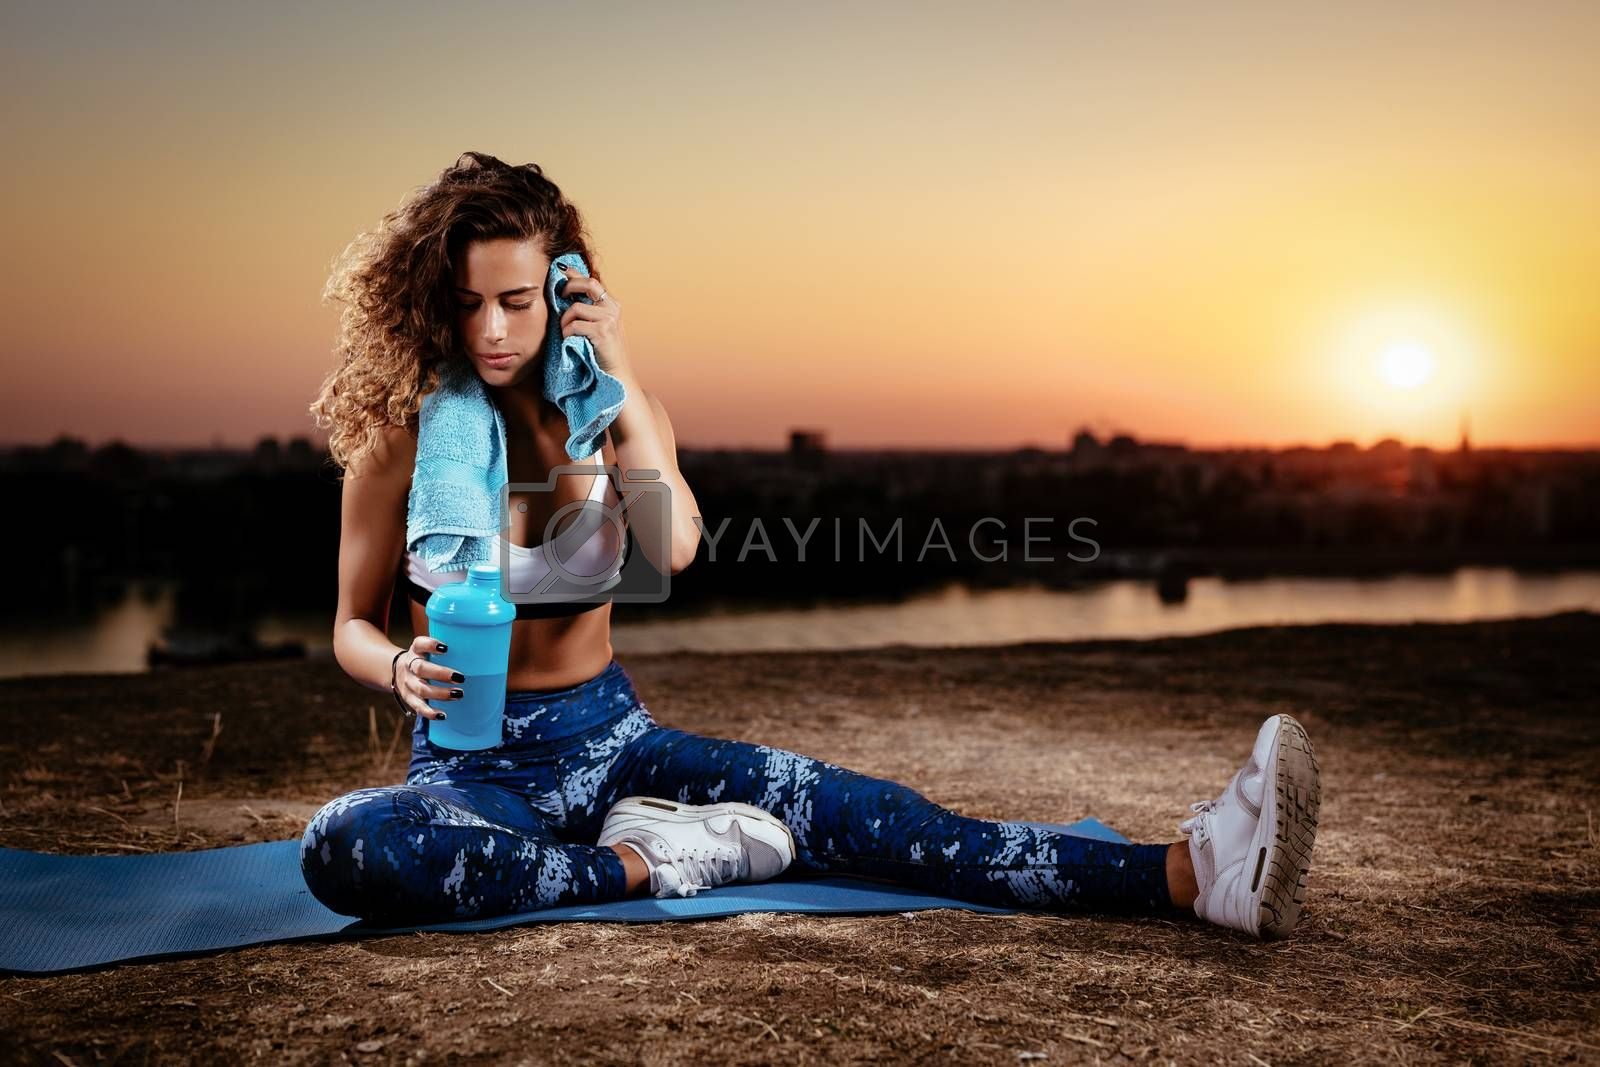 Young fitness woman resting afther hard training on the city rooftop at sunset.